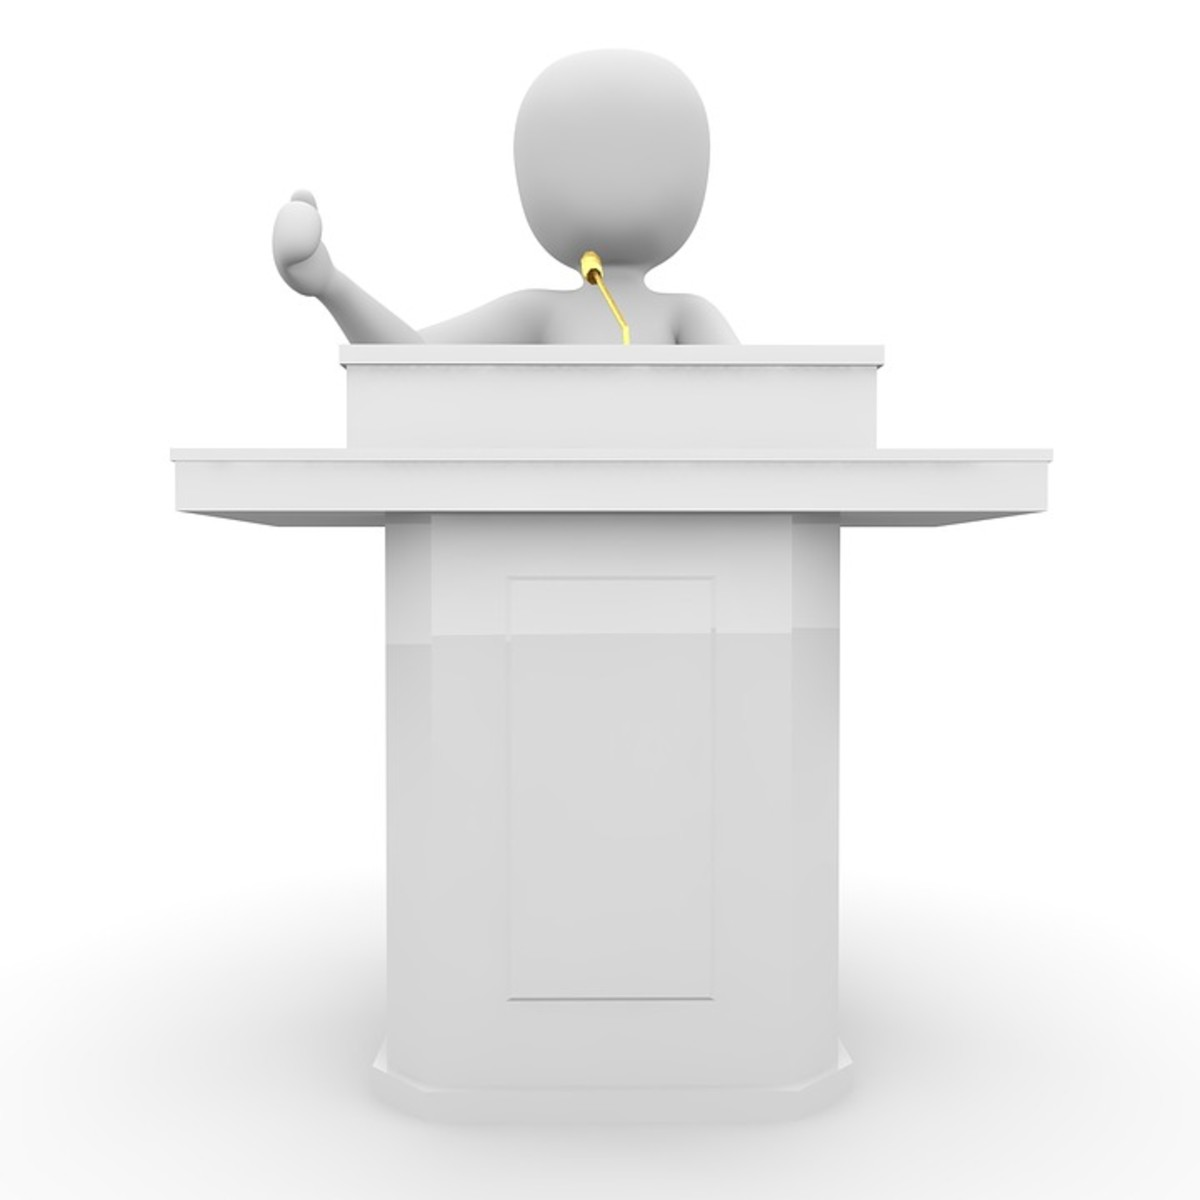 Improve Your Public Speaking Skills - 10 Tips to Improve Public Speaking